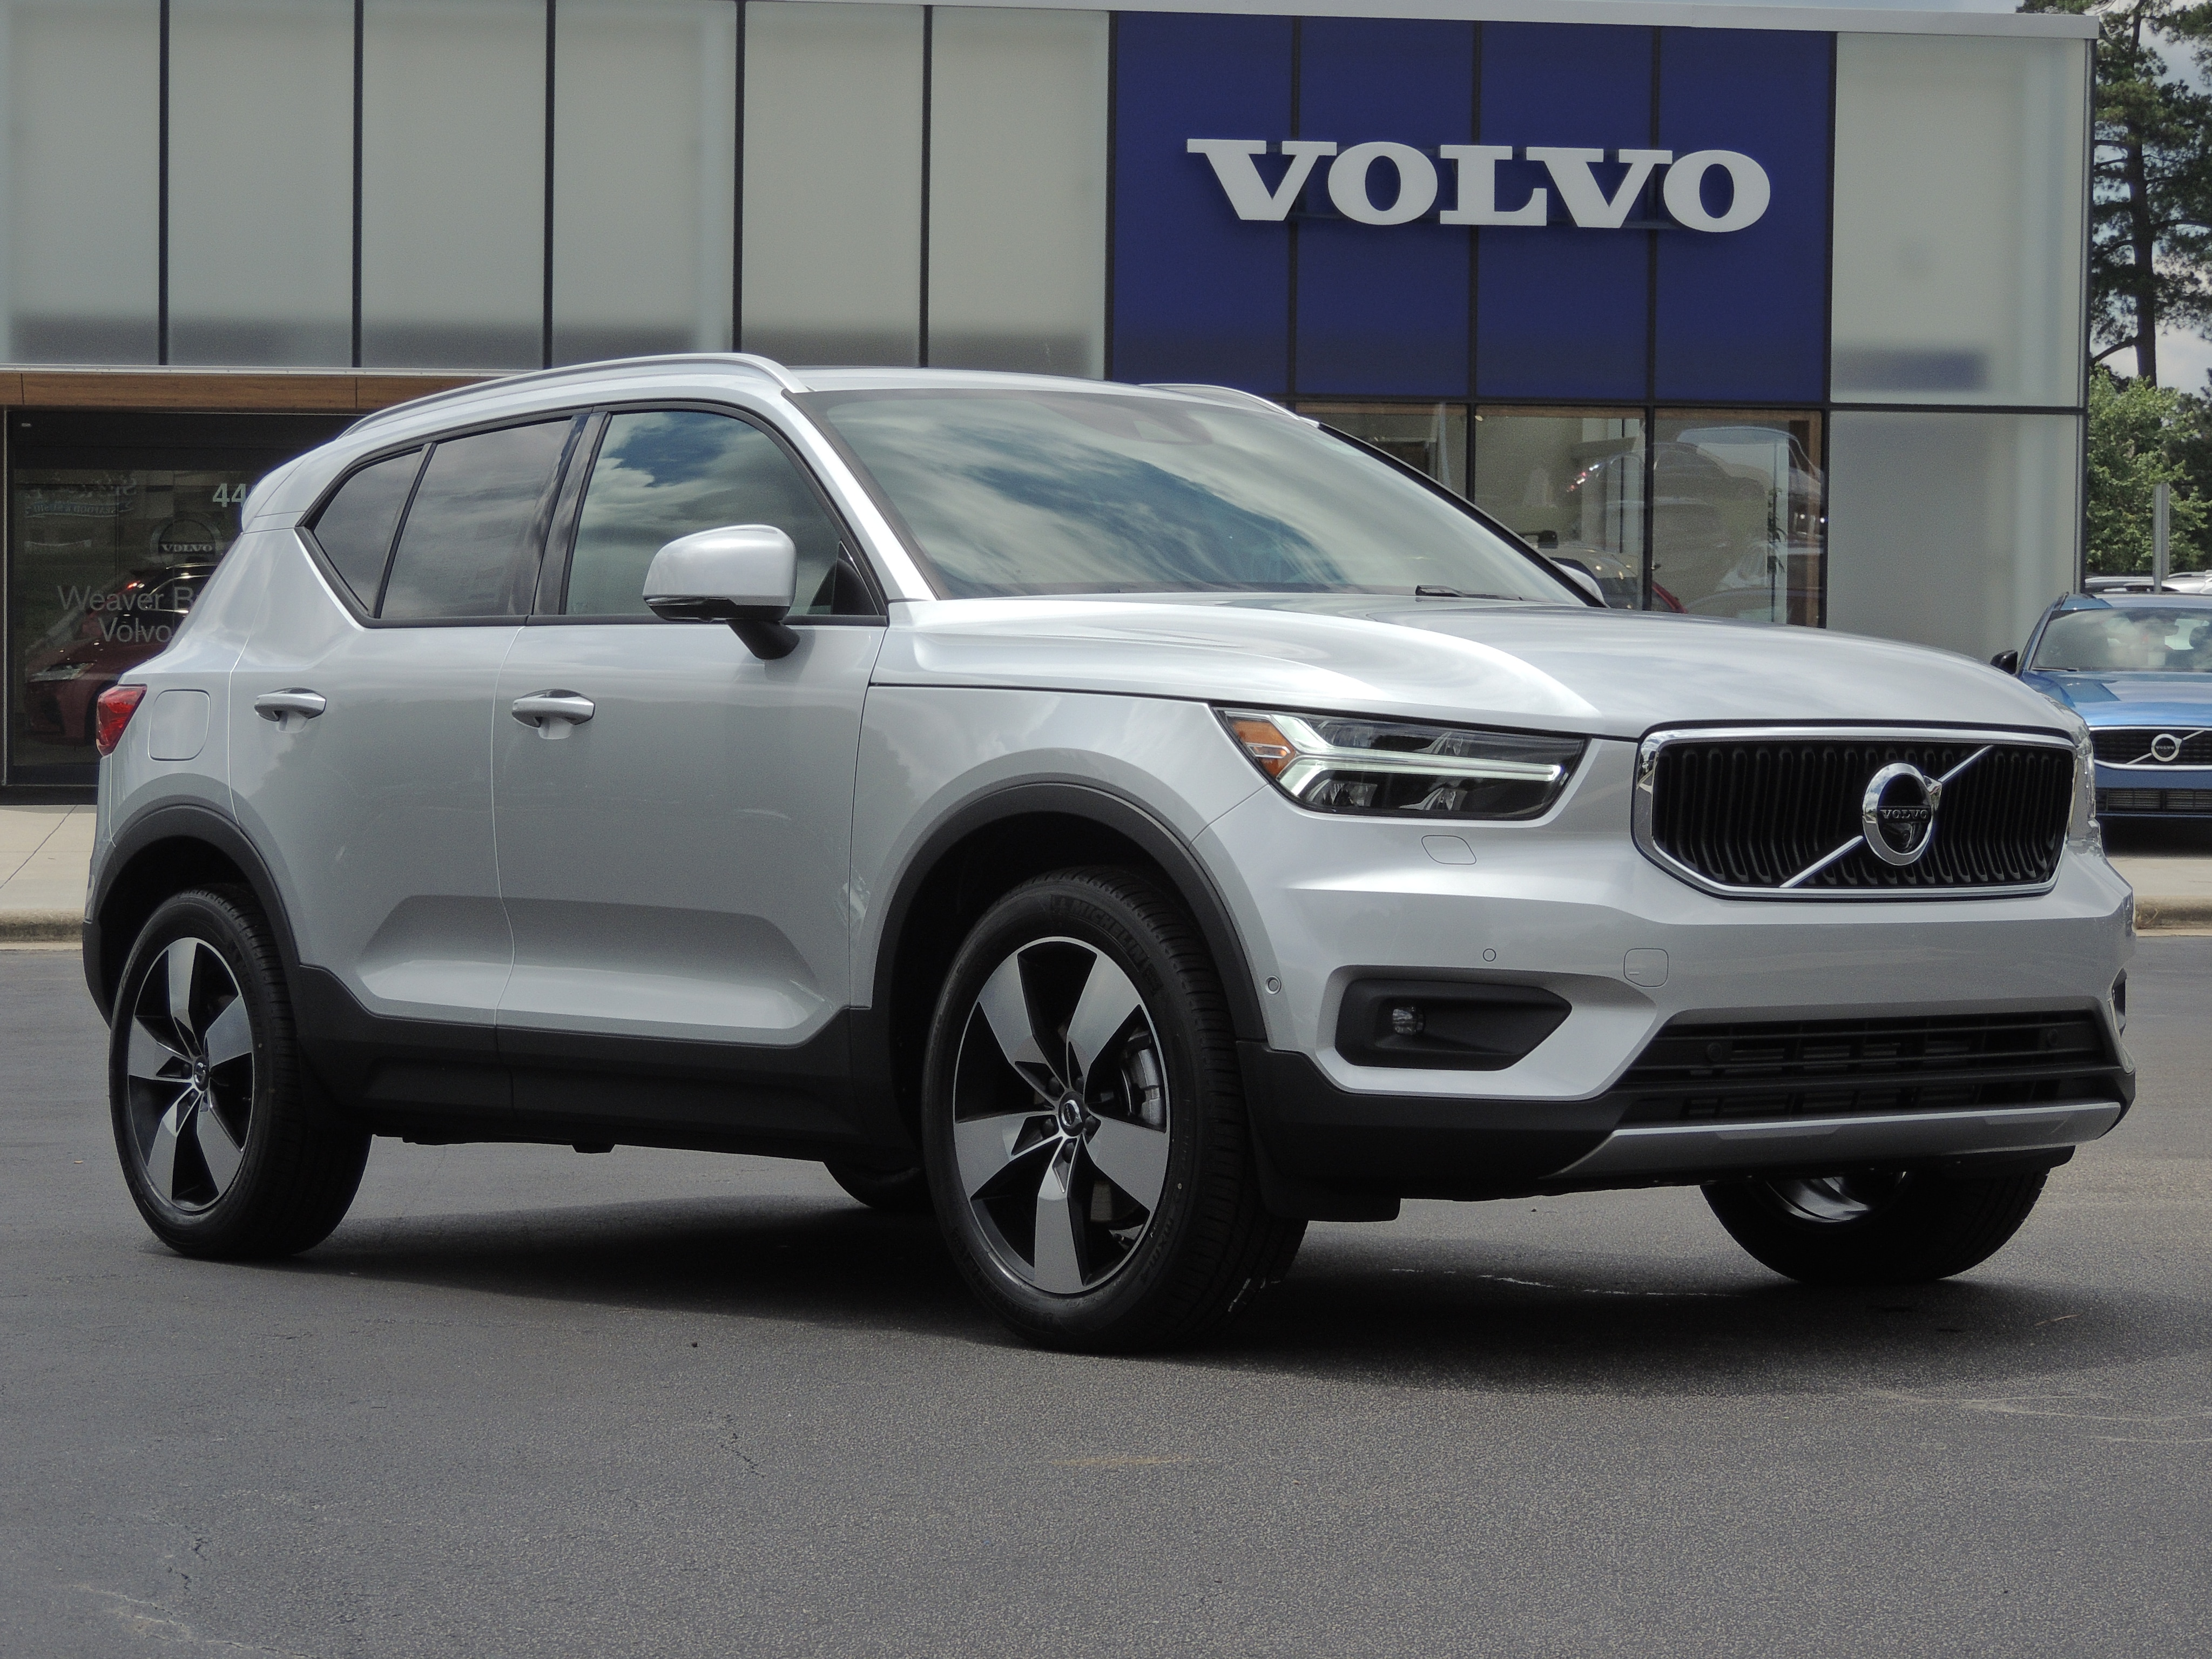 2019 Volvo XC40 For Sale in Raleigh NC | Weaver Brothers